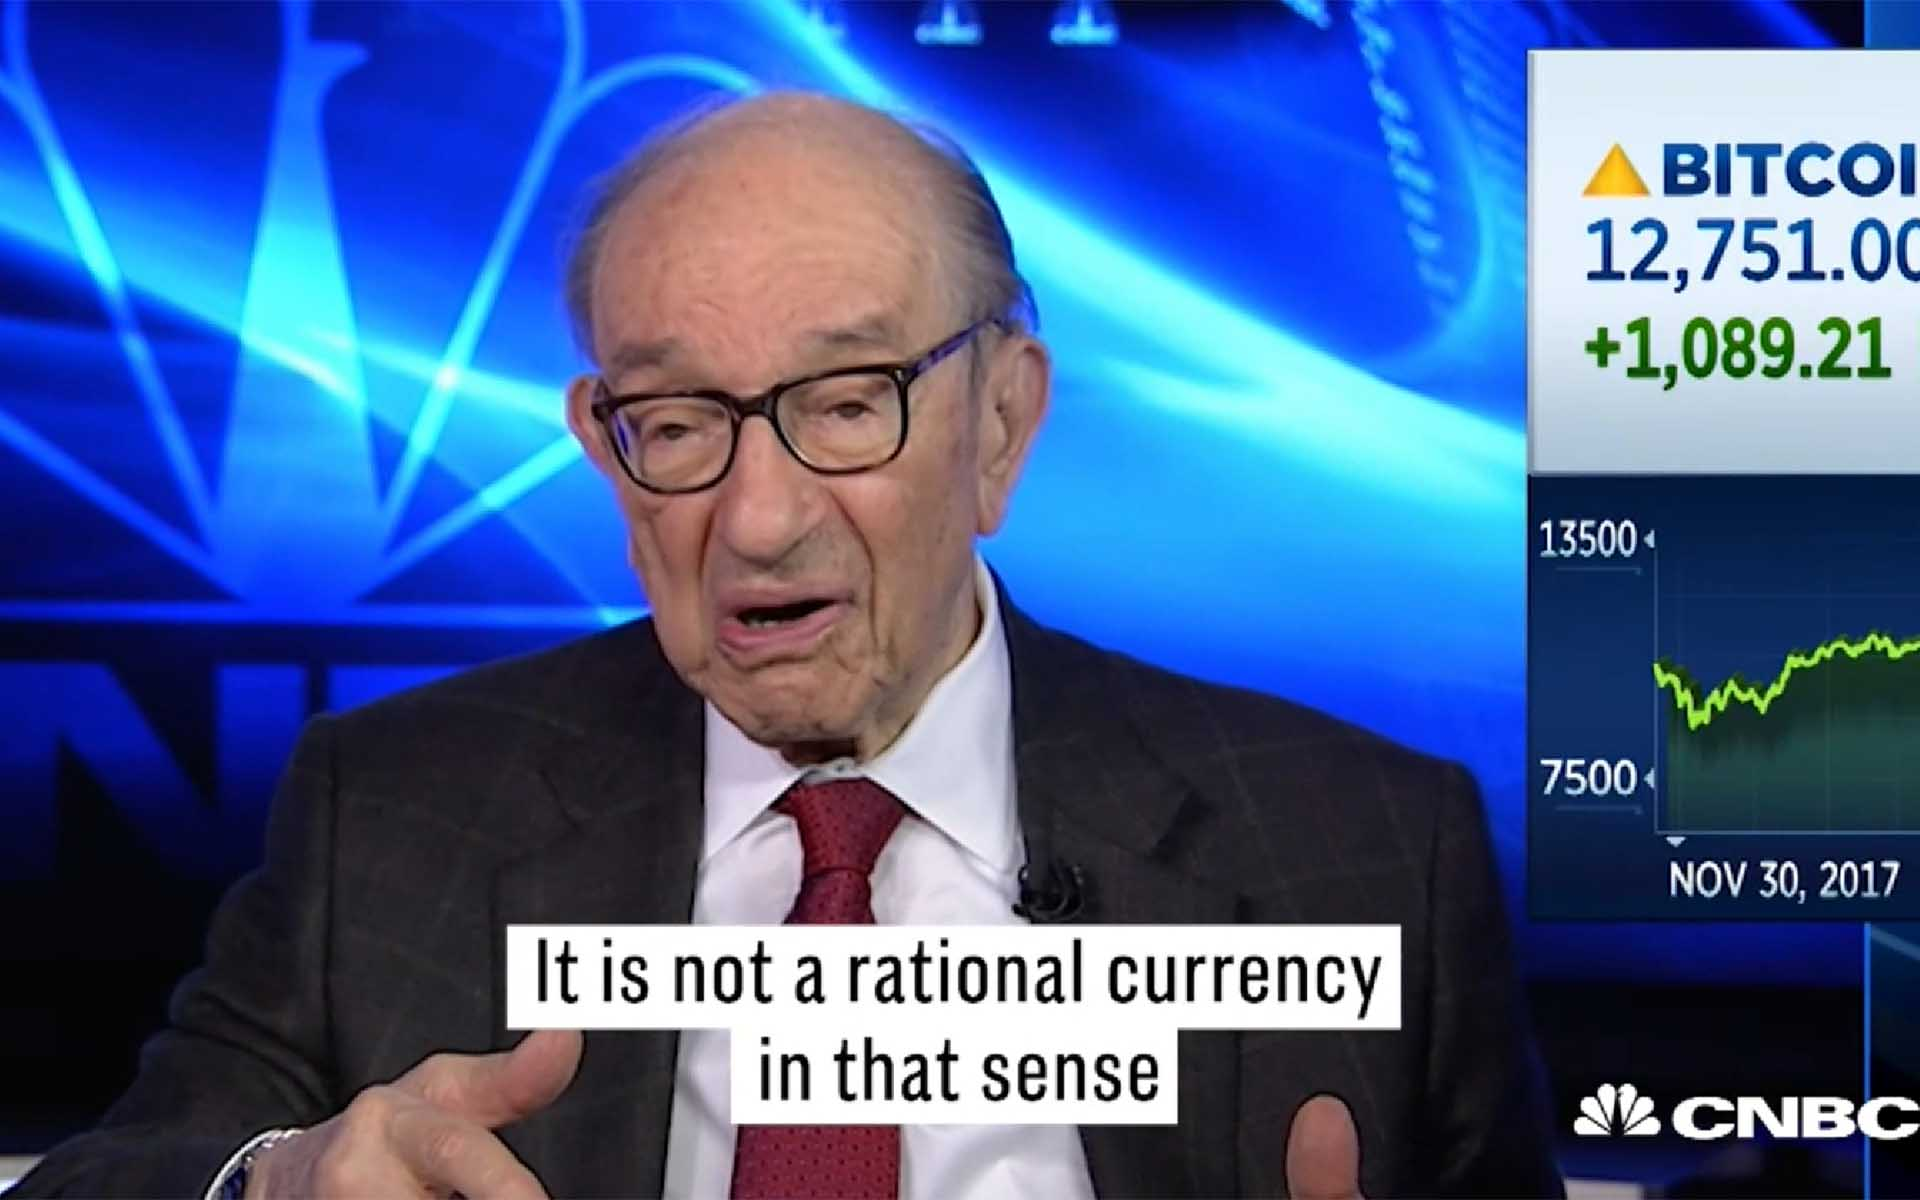 Former US Federal Reserve Chairman Alan Greenspan: Bitcoin Not Rational